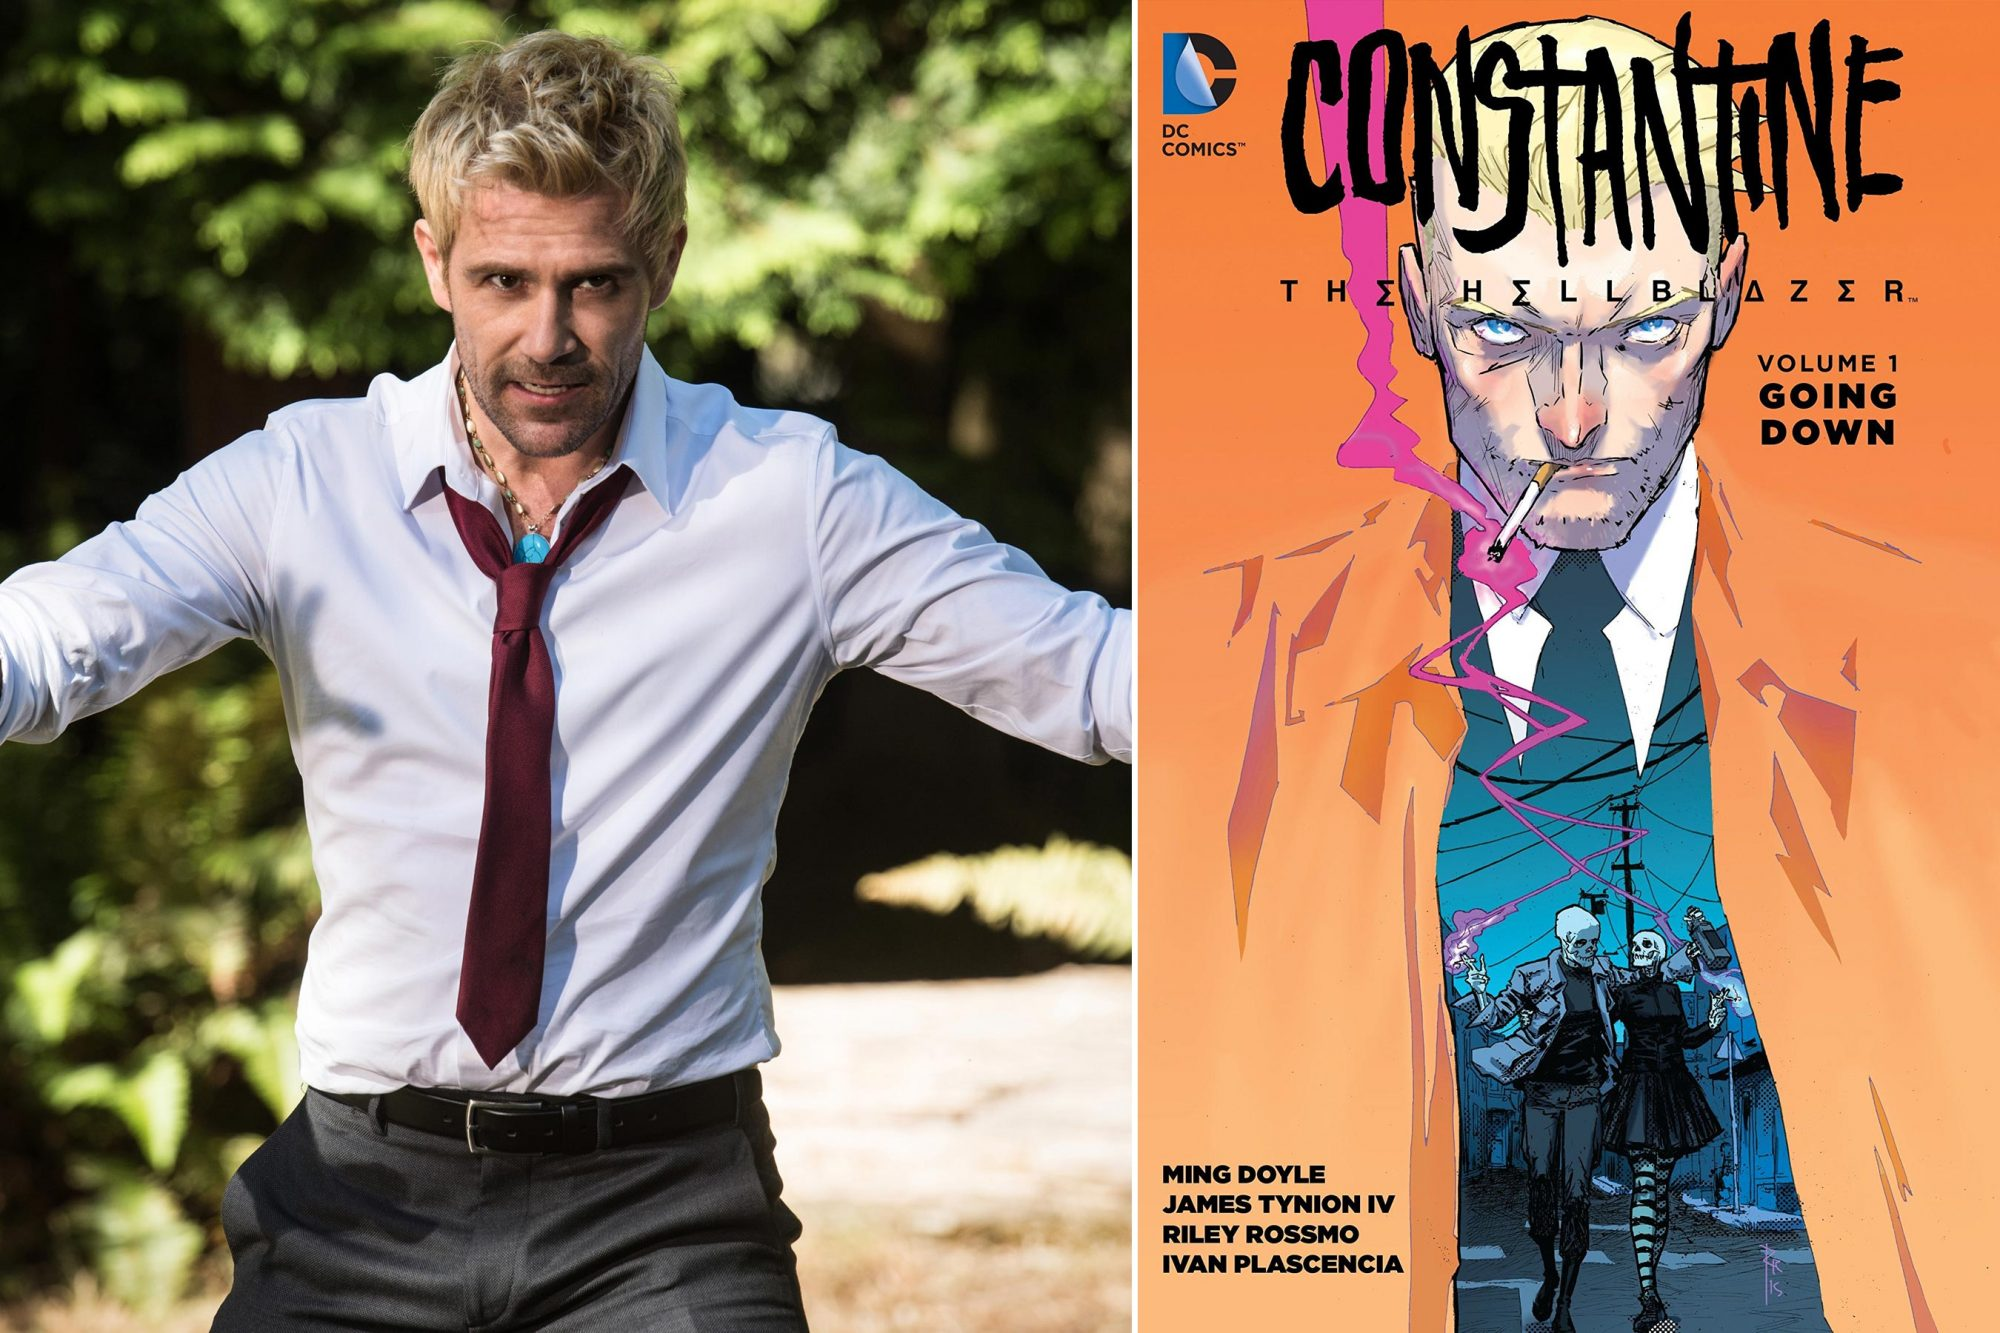 If you watch DC's Legends of Tomorrow... then read Constantine: The Hellblazer, Vol. 1: Going Down and Vol. 2: The Art of the Dea